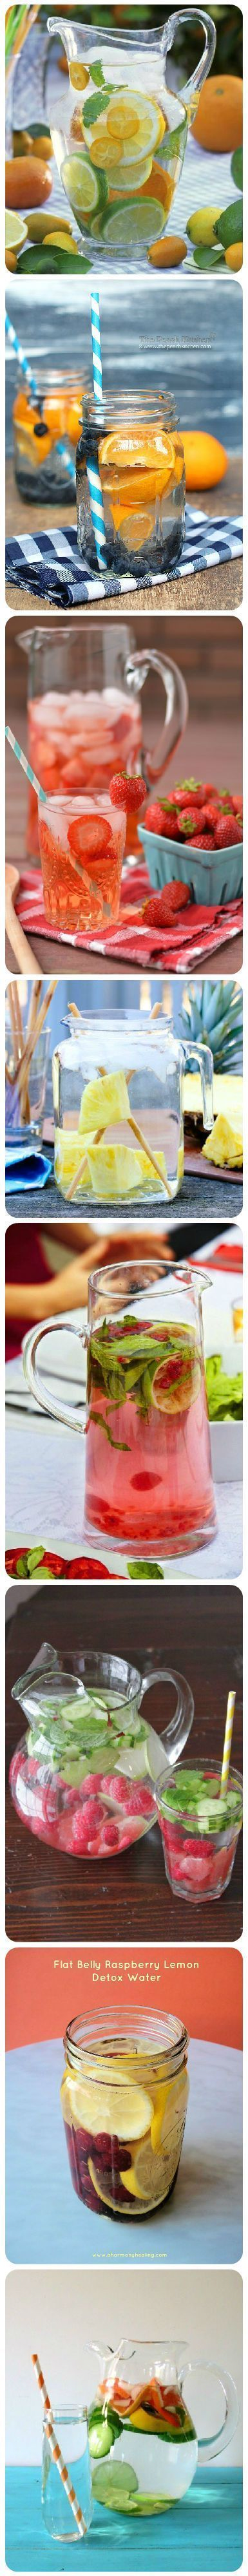 Trying to course a healthy lifestyle? Ever tried detox waters? Do you know detox water benefits? Try this natural detox water.